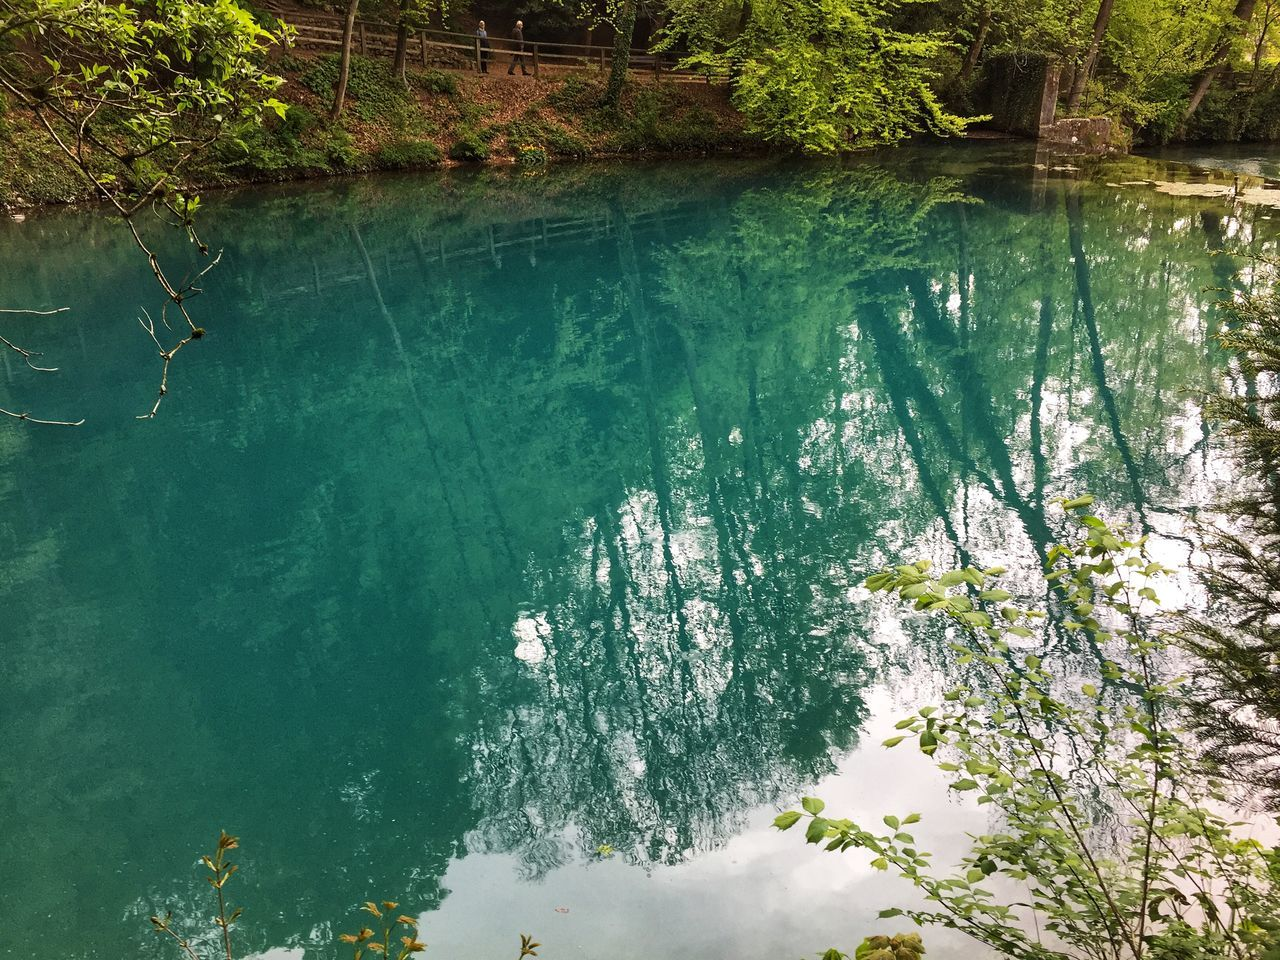 water, tree, plant, beauty in nature, nature, day, tranquility, scenics - nature, reflection, no people, lake, tranquil scene, high angle view, waterfront, outdoors, green color, non-urban scene, growth, turquoise colored, marine